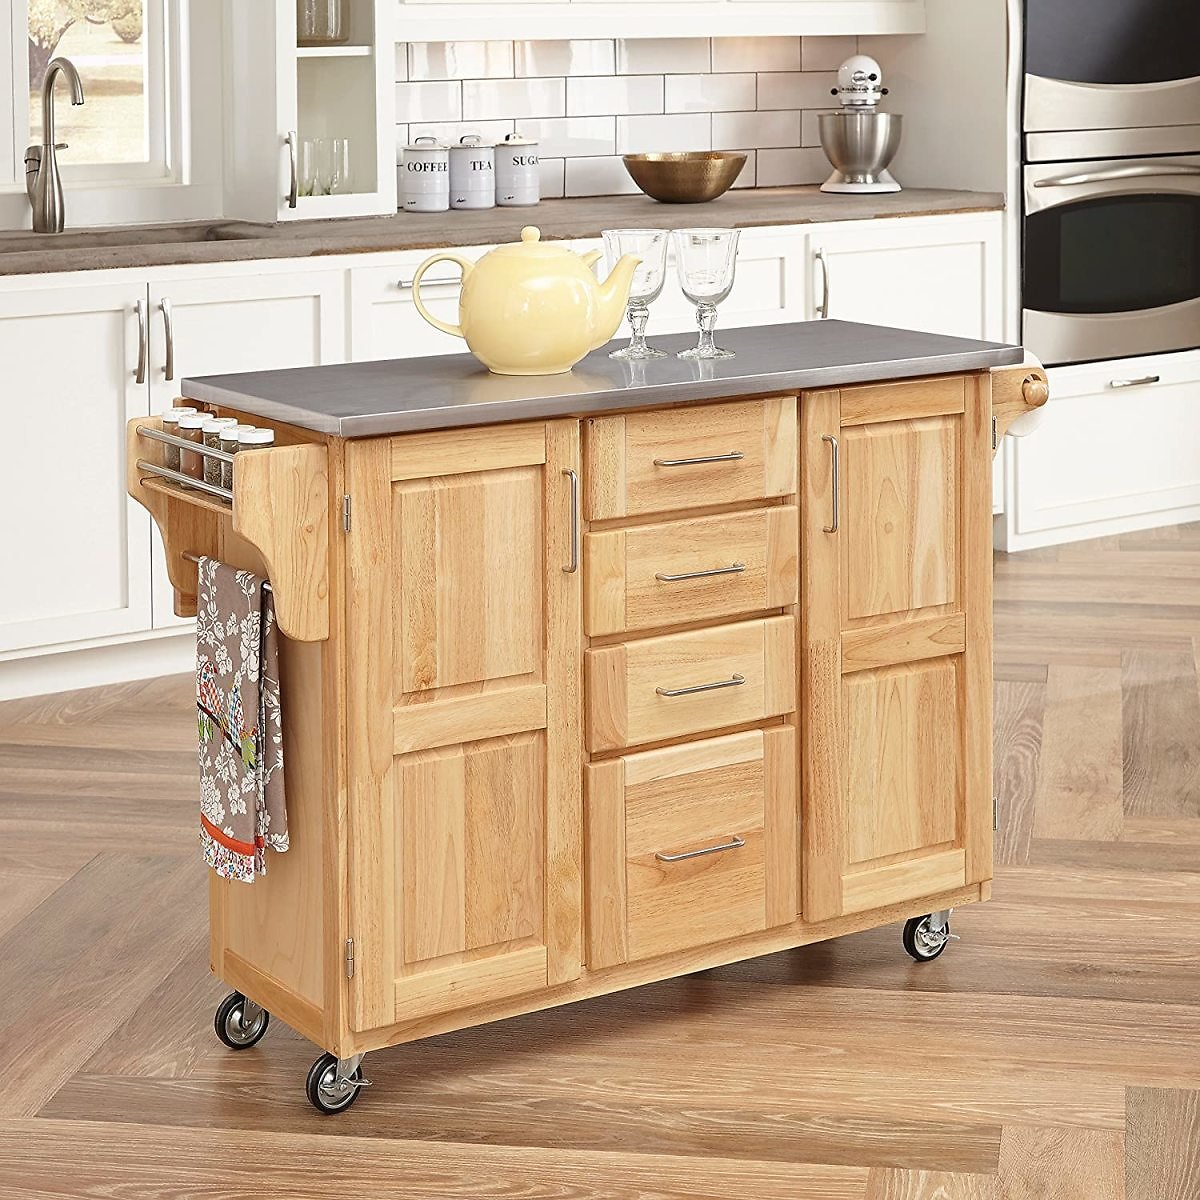 Home Styles Kitchen Cart with Breakfast Bar & Stainless Steel Top By Home Styles